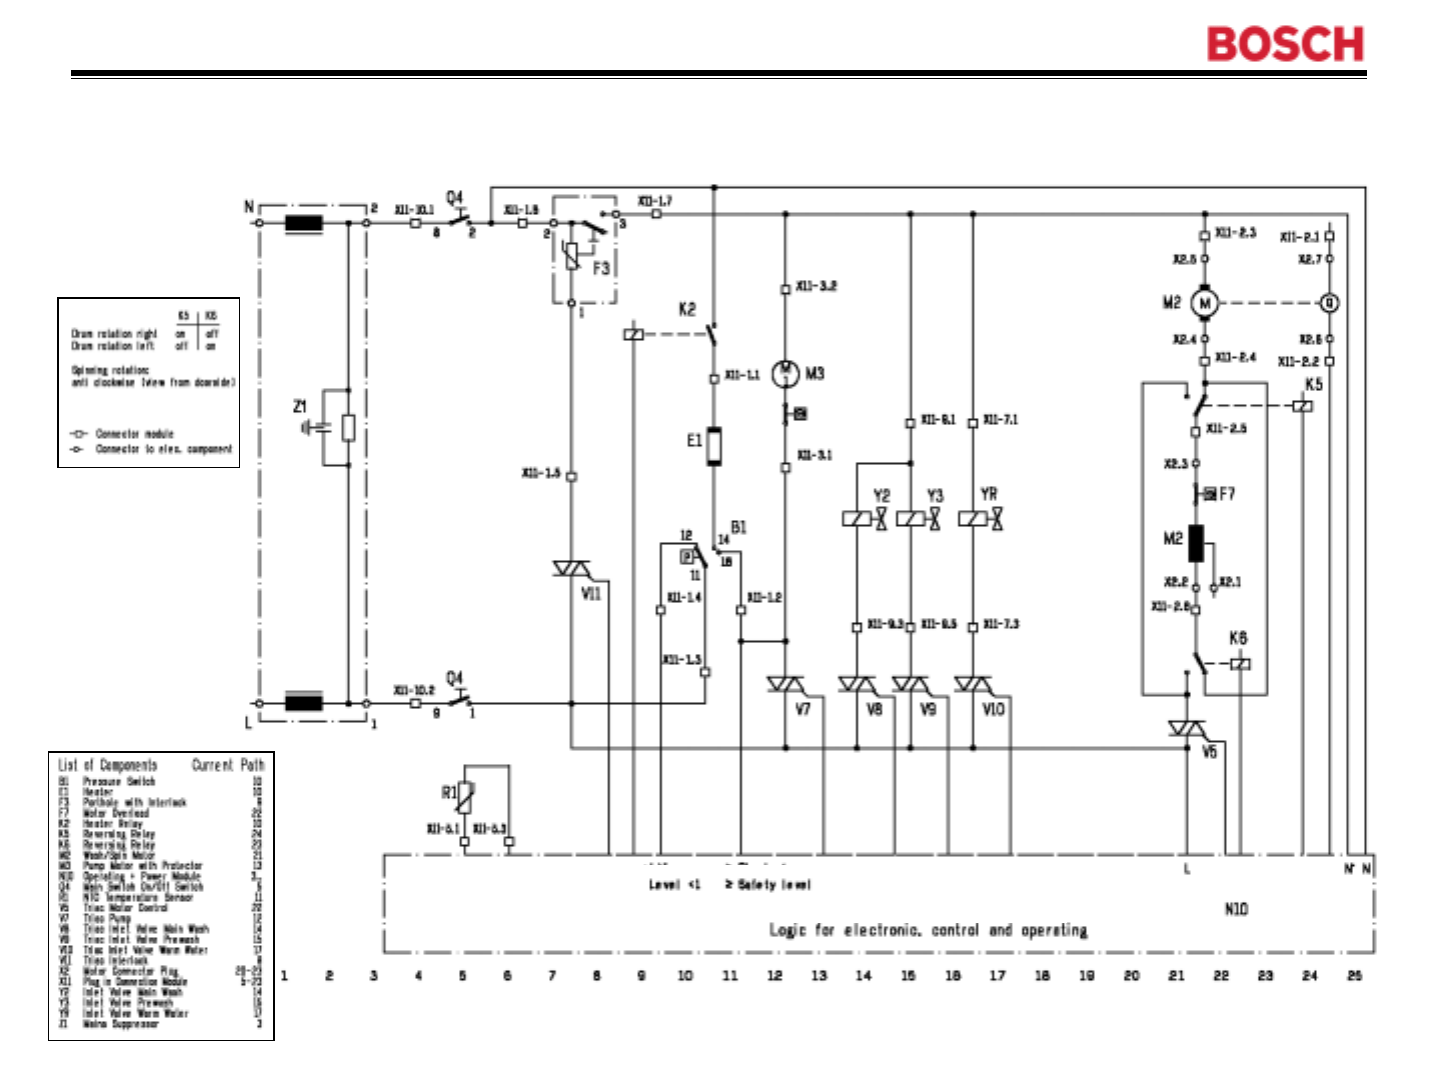 685c8626 18a2 4257 9875 ef2afaffb9a4 bg25?resize=665%2C498 diagrams 22001696 kenmore microwave oven wiring diagram natural microwave oven wiring diagram at readyjetset.co